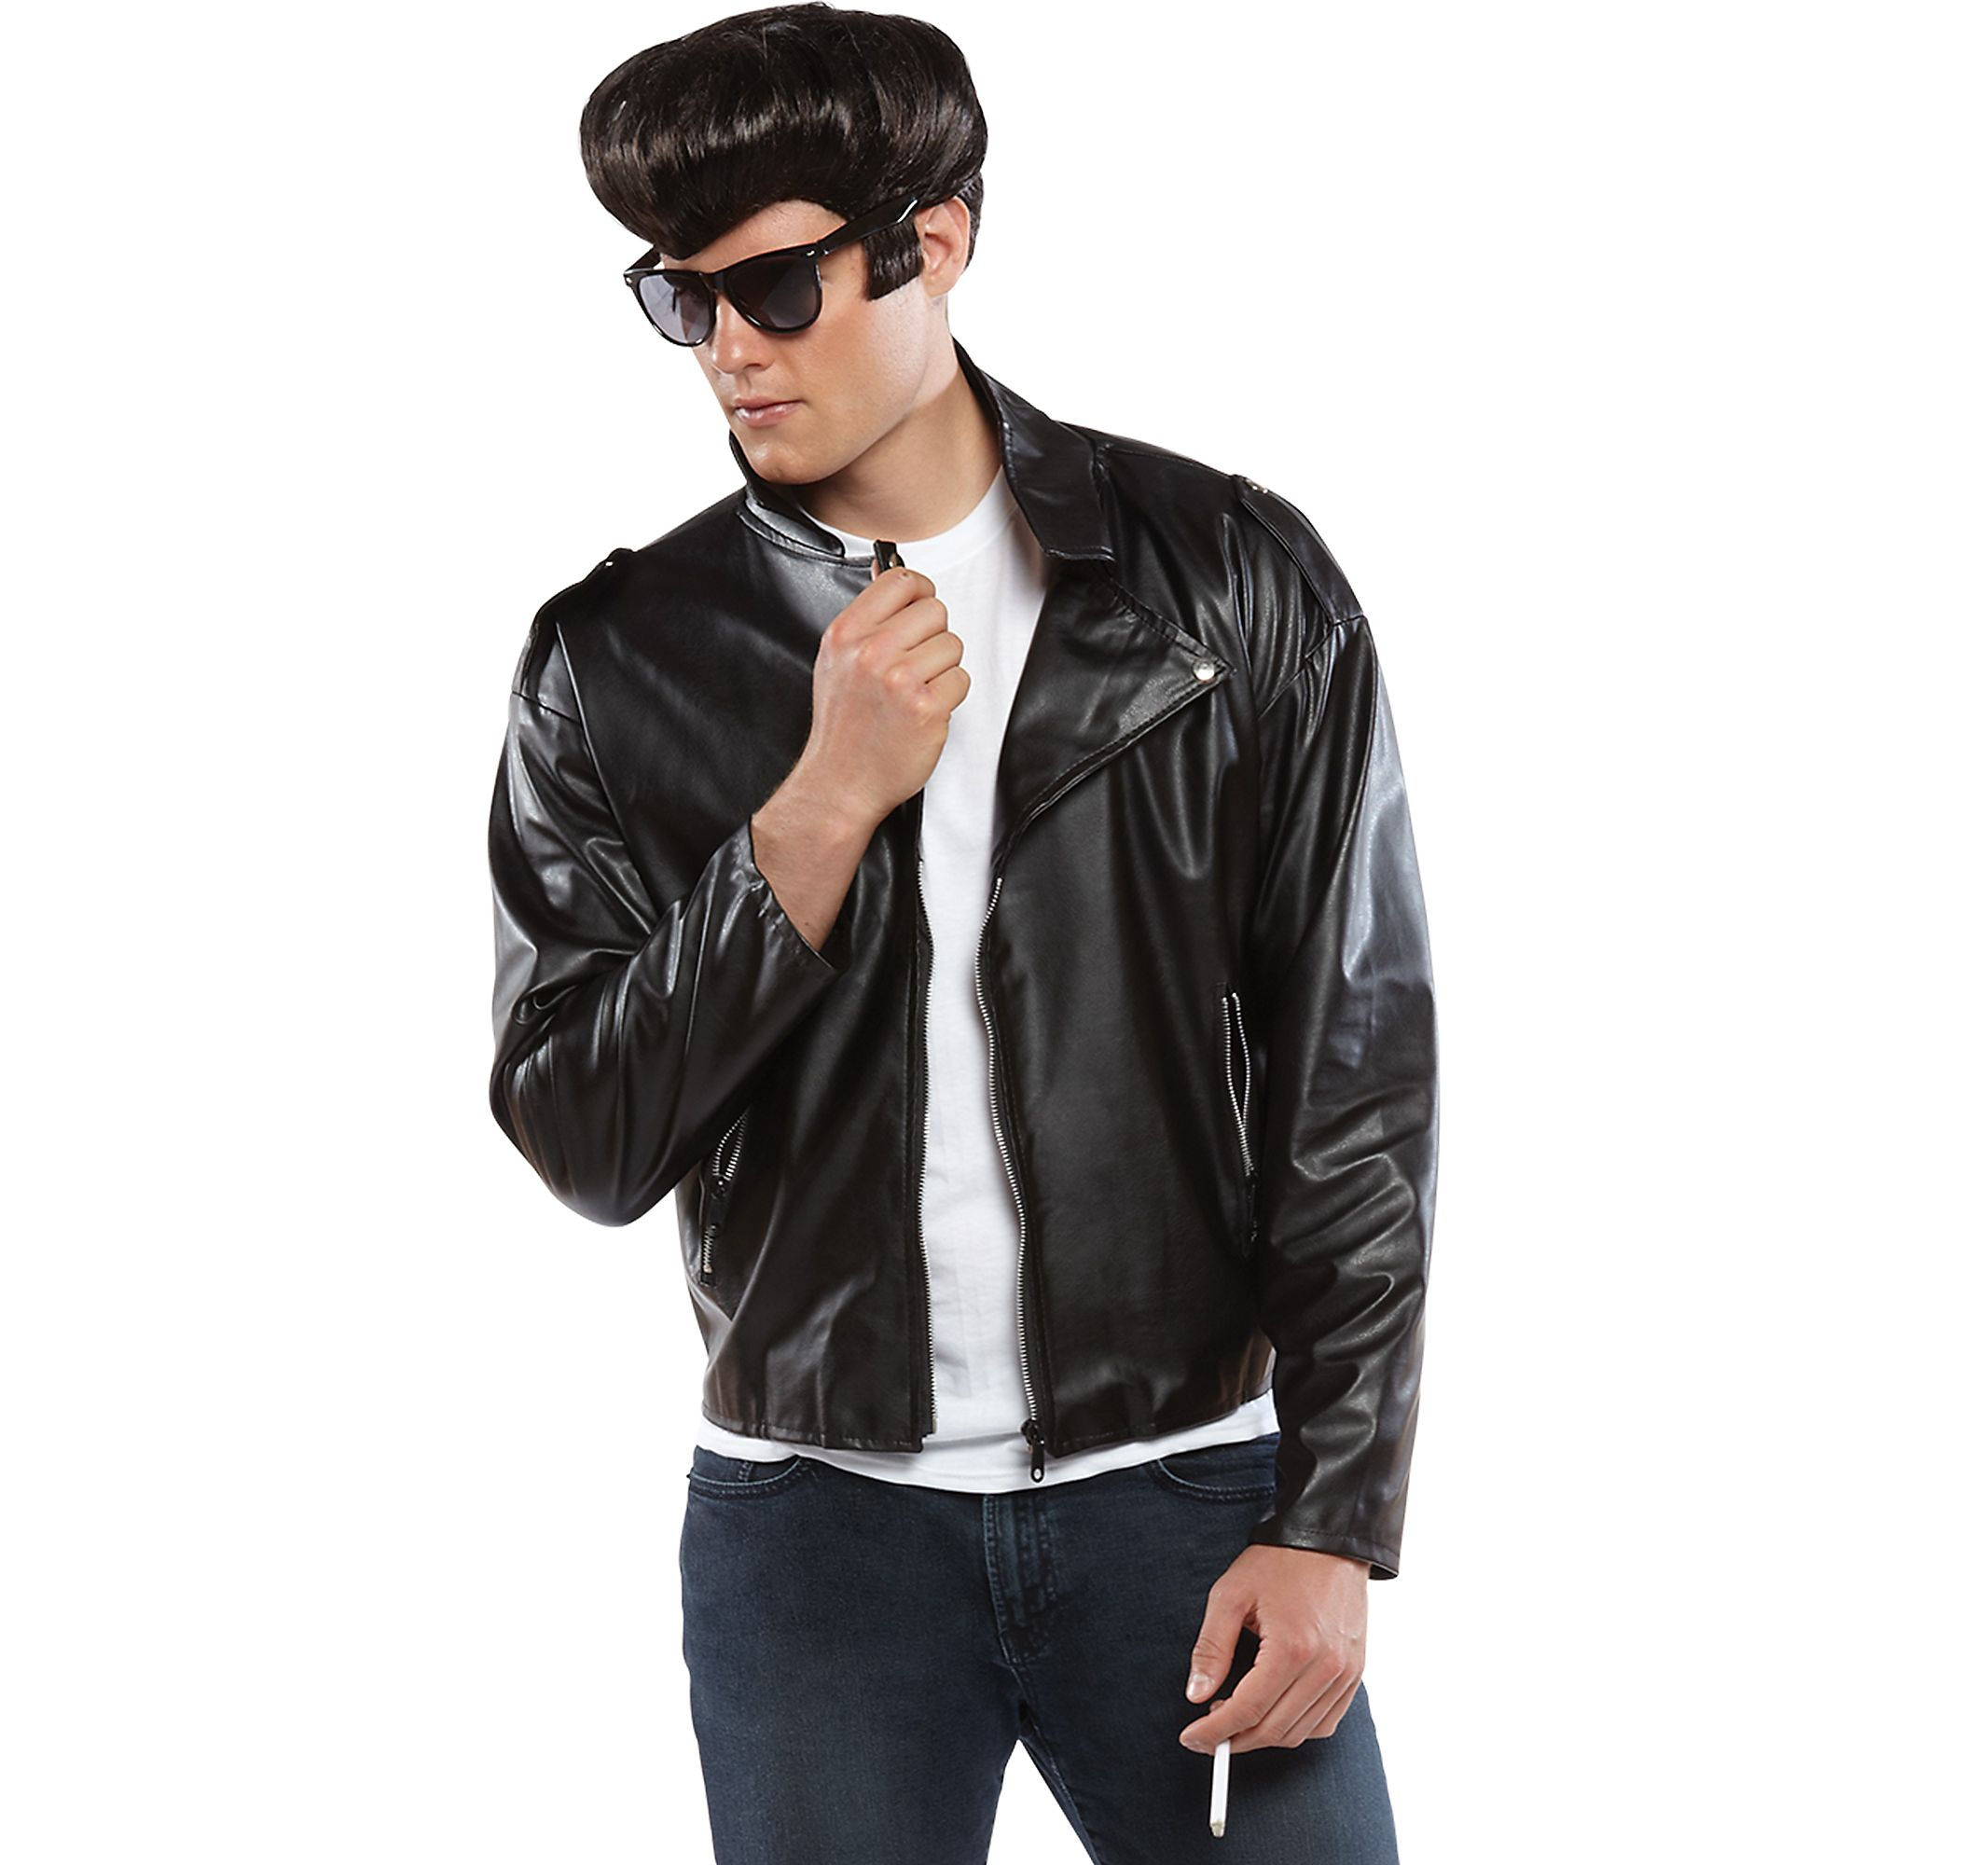 f8638c92aba Purim One Size Costume Greaser Jacket Adult 50s Halloween Fancy Dress Amscan